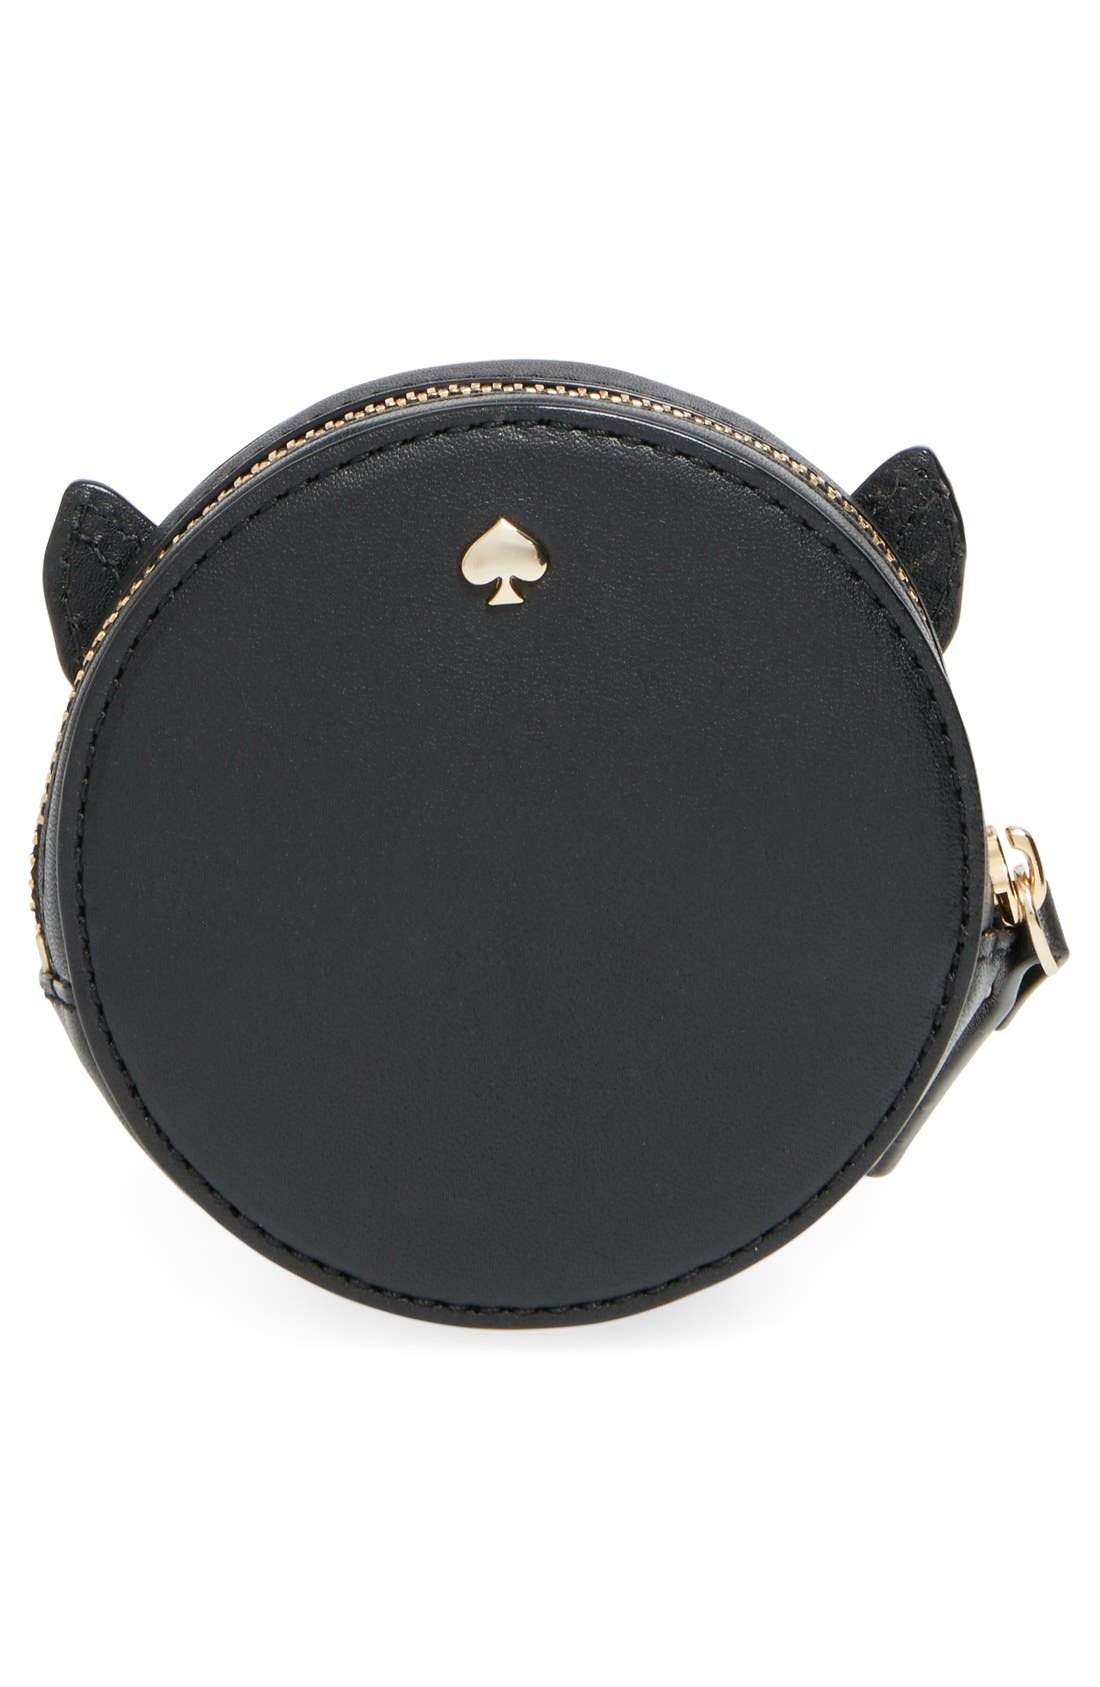 KATE SPADE NEW YORK,                             kate spade new york 'blaze a trail - fox' leather coin purse,                             Alternate thumbnail 4, color,                             001